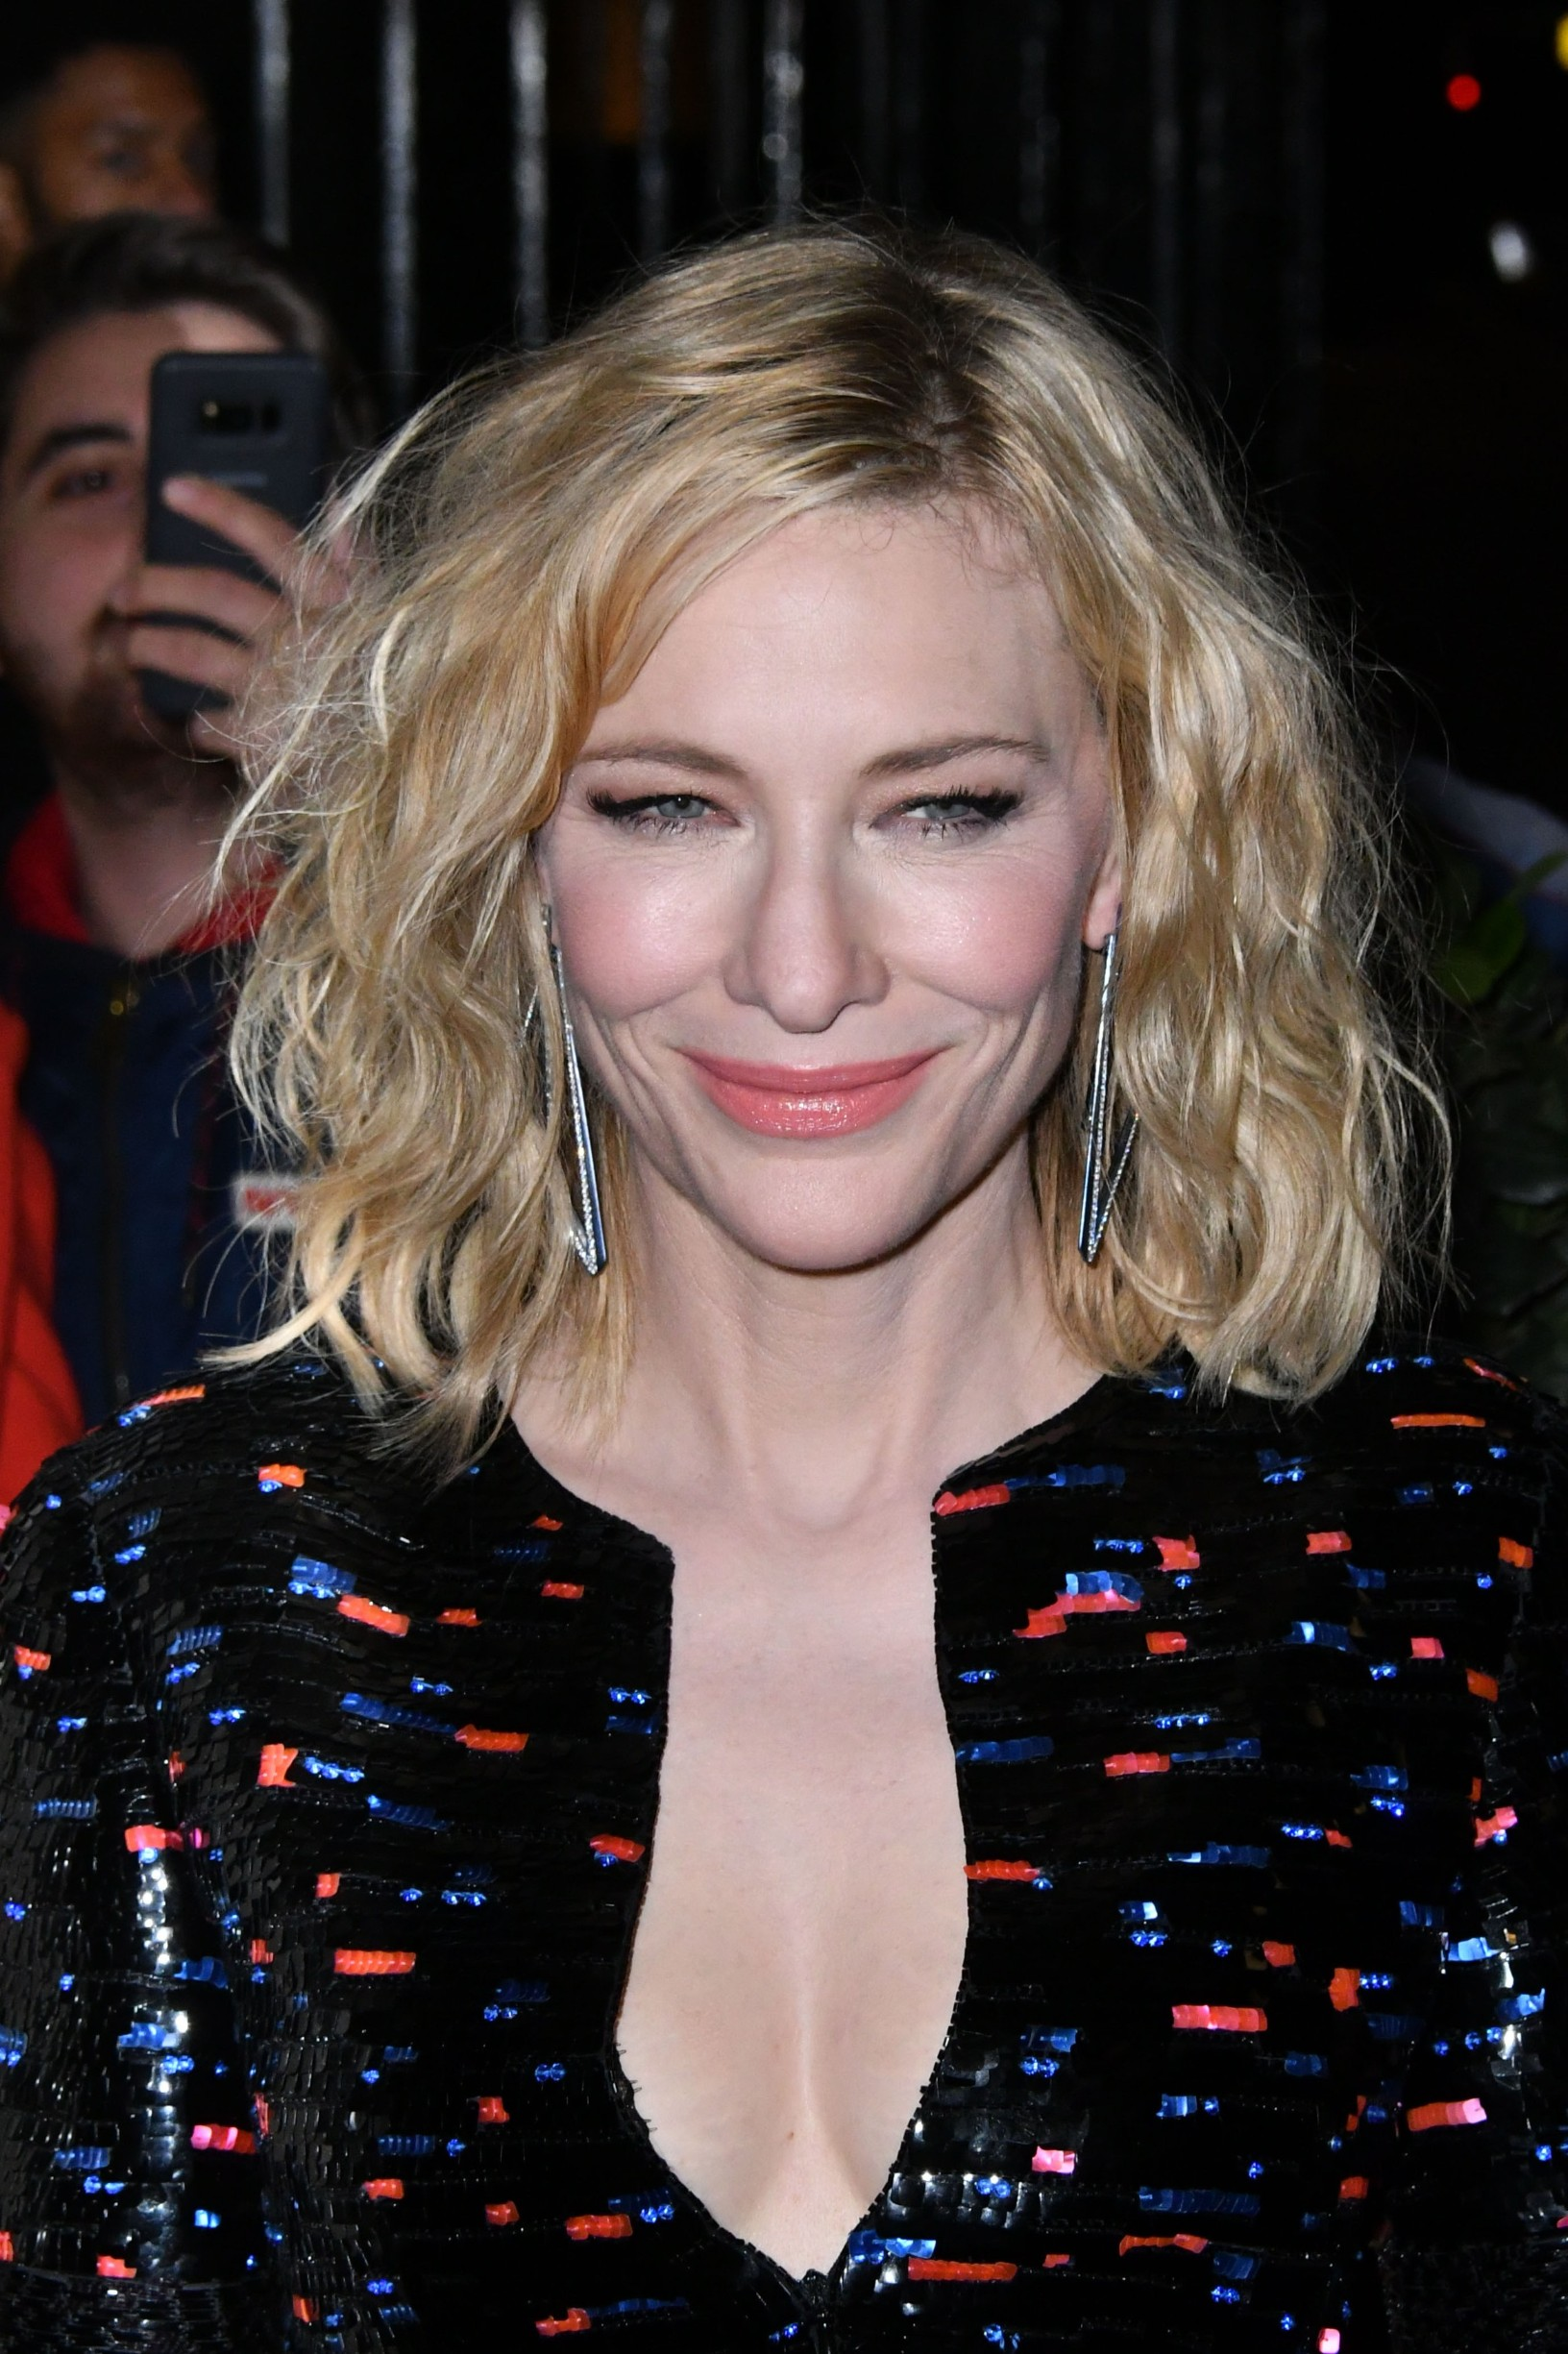 Cate Blanchett attends Harper's Bazaar annual Women of the Year Awards, which celebrates female high-fliers, at Claridge's hotel, London, England on October 29, 2019., Image: 479873541, License: Rights-managed, Restrictions: , Model Release: no, Credit line: Nils Jorgensen / Capital pictures / Profimedia